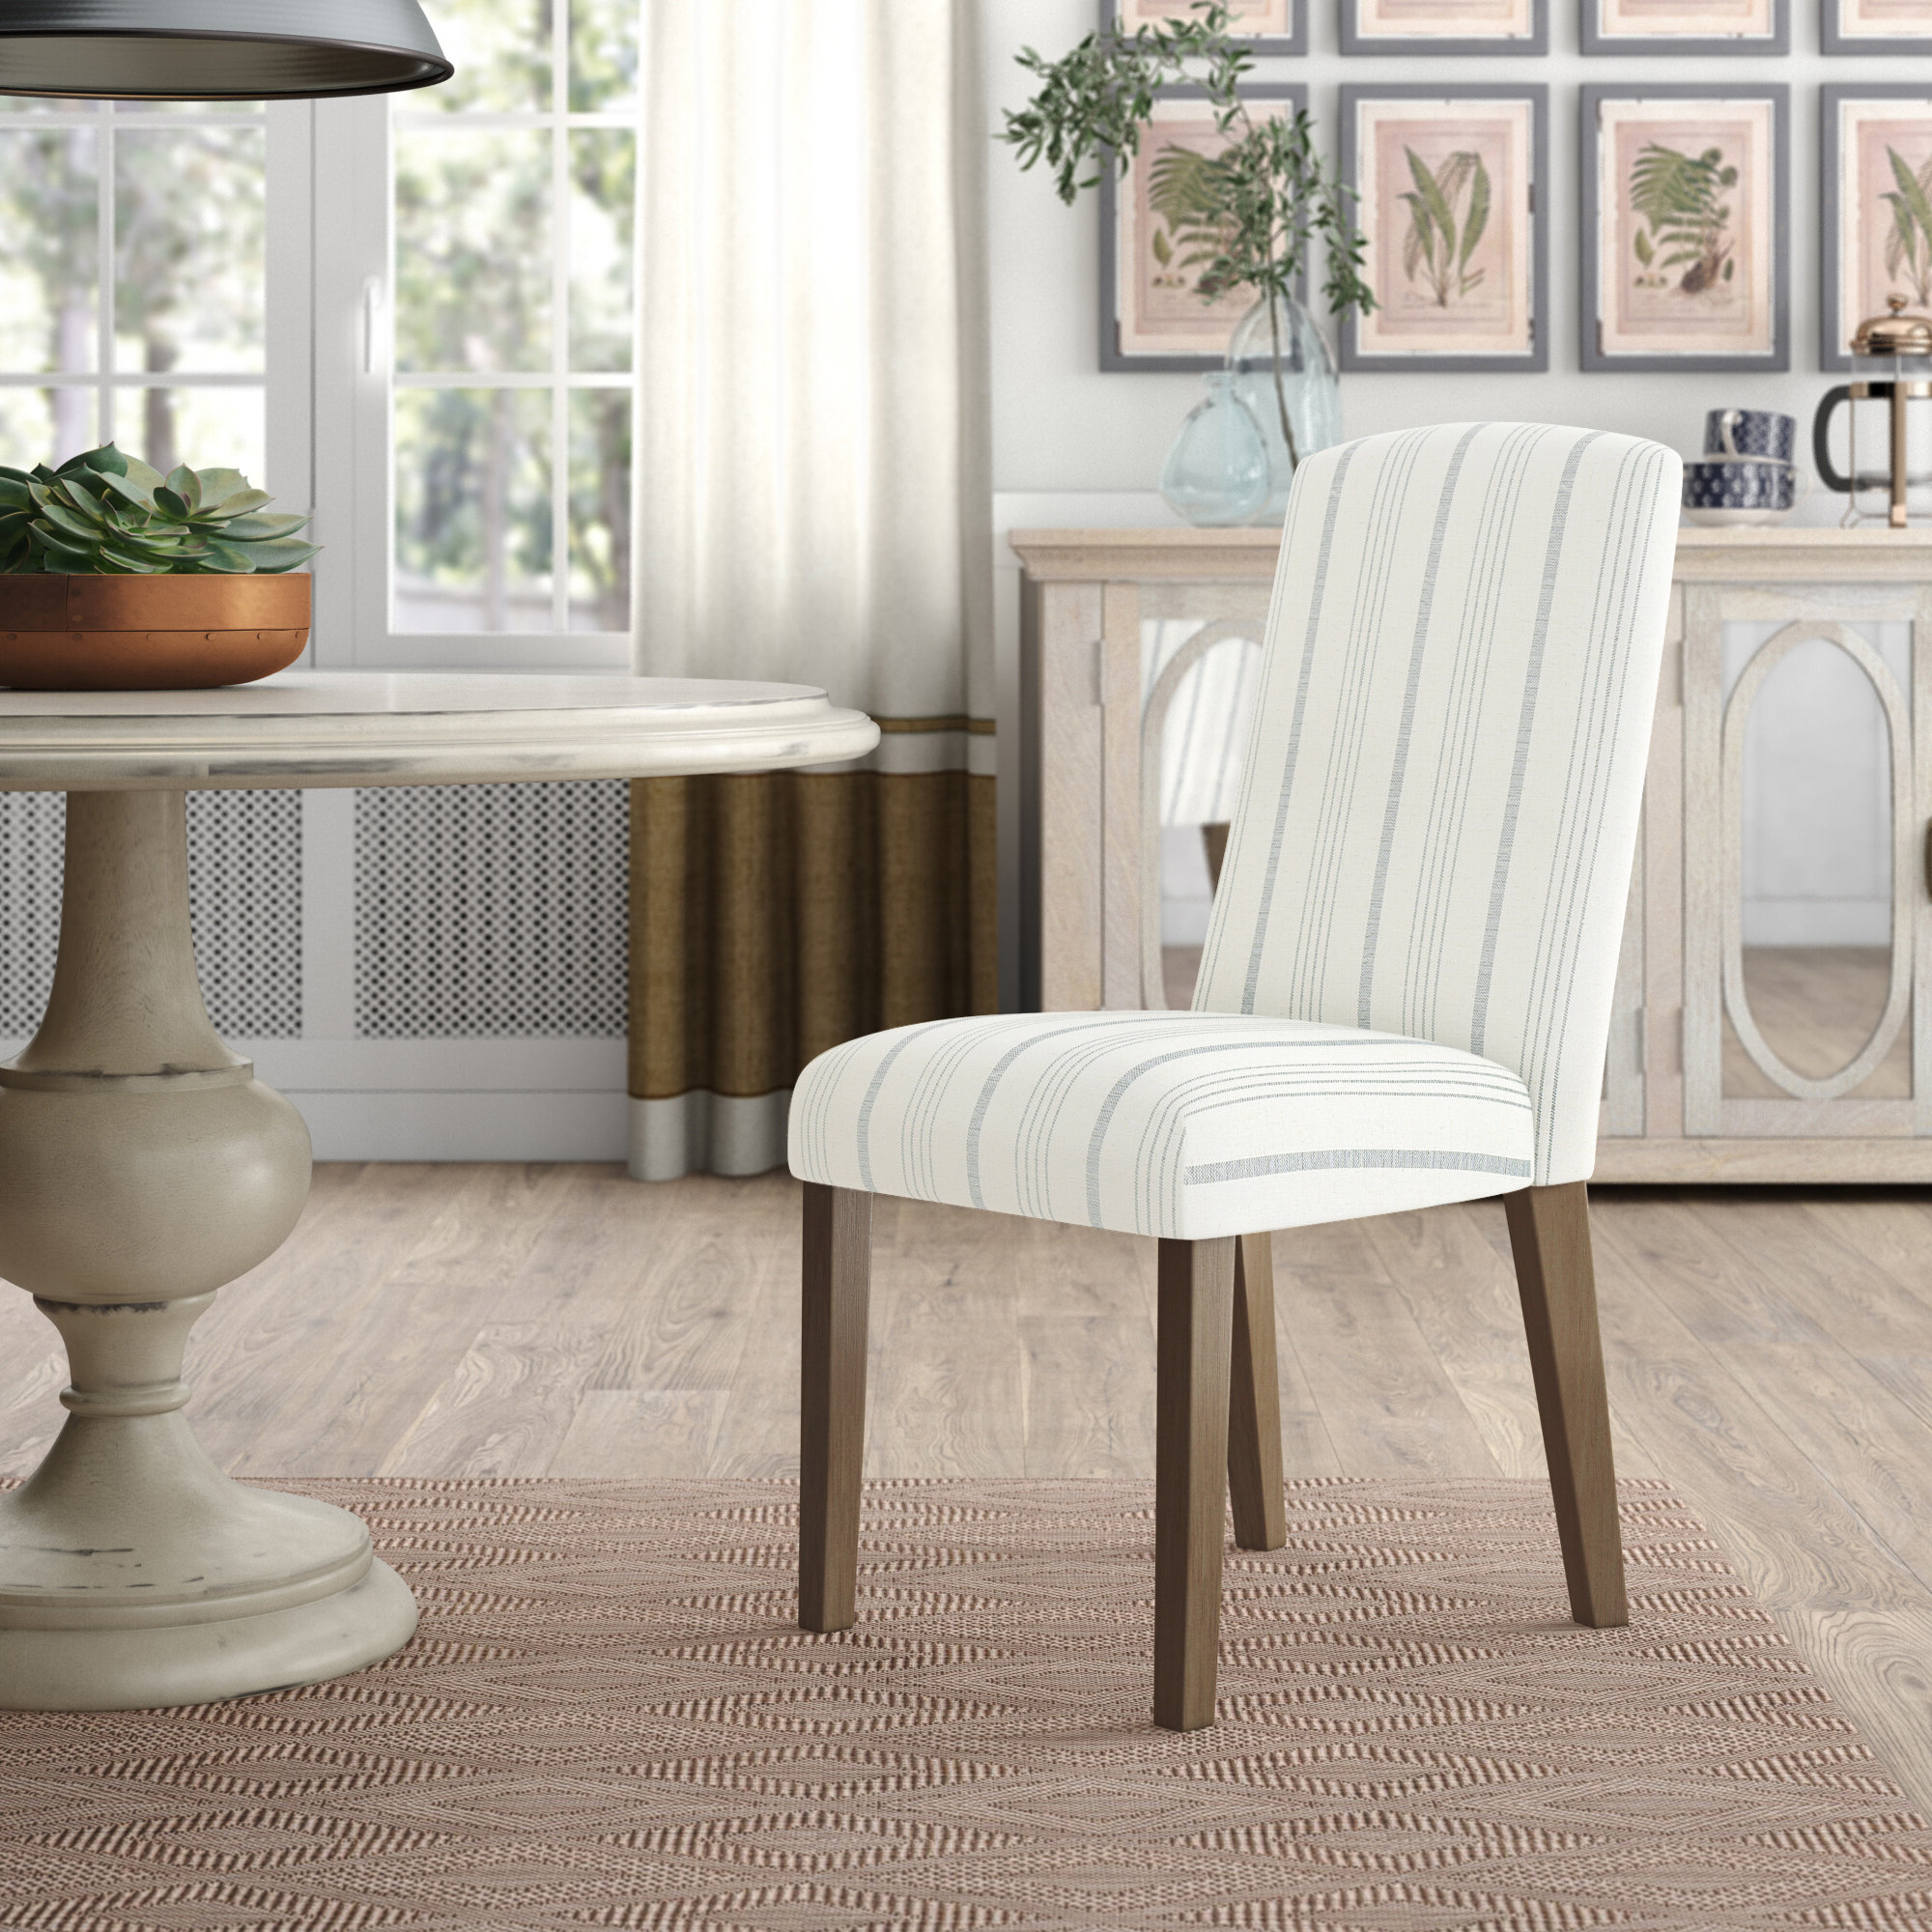 2019 Coastal Parsons Kitchen & Dining Chairs You'll Love In 2021 With Aime Upholstered Parsons Chairs In Beige (View 4 of 20)